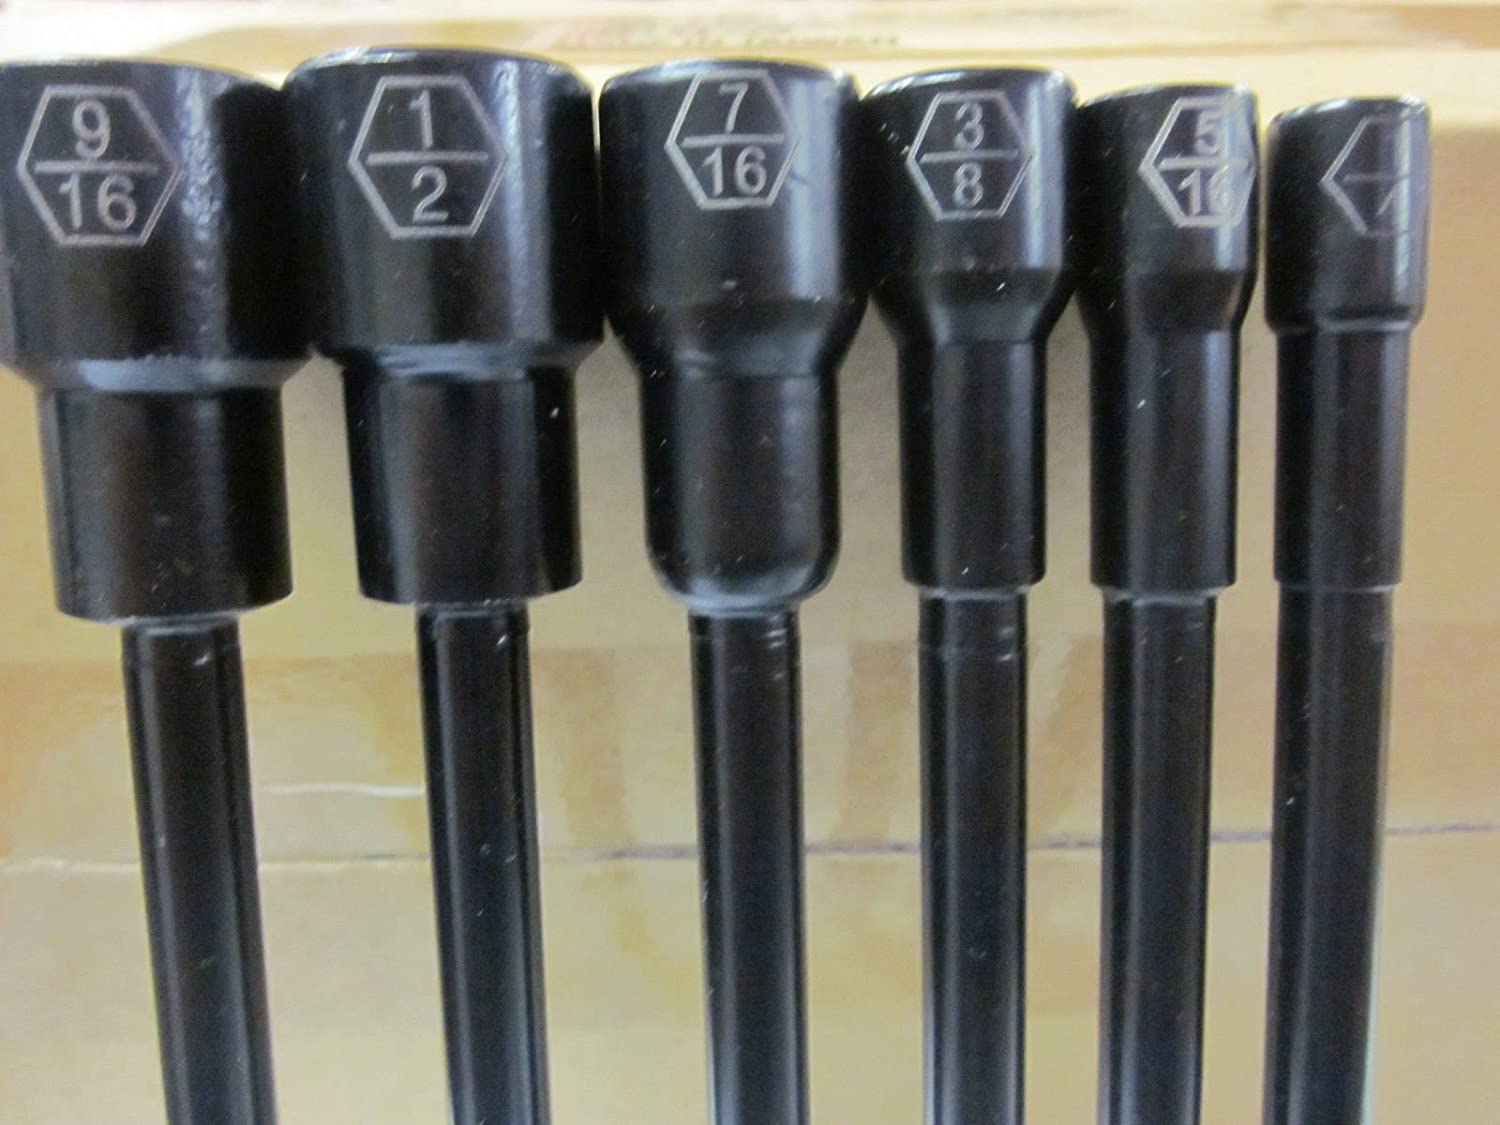 6pc IMPACT READY 6 MAGNETIC NUTSETTER 1//4 5//16 3//8 7//16 1//2 9//16 DRIVER NUT SET